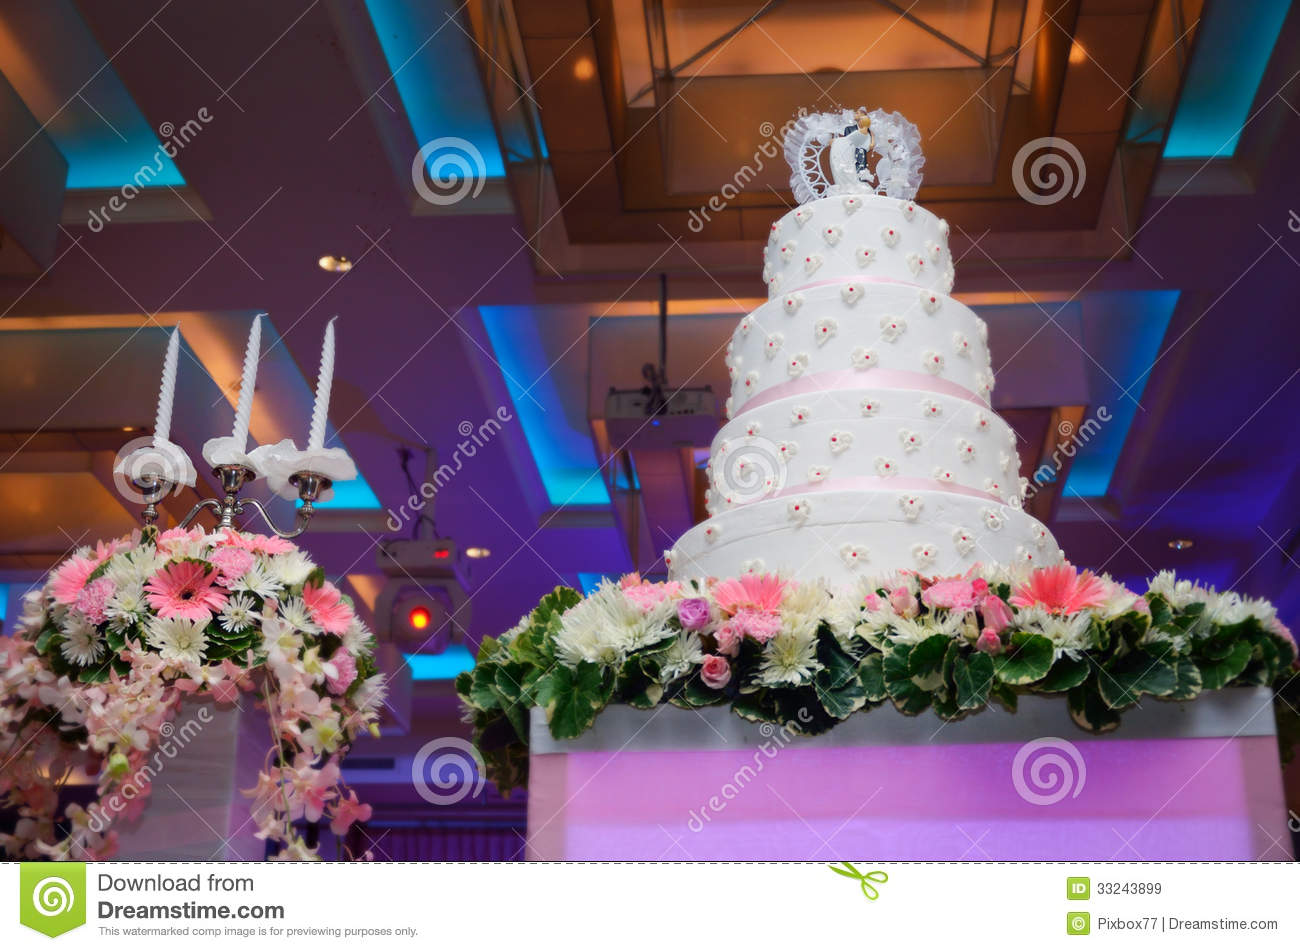 Download Wedding cake and candle stock image. Image of pink, dessert - 33243899